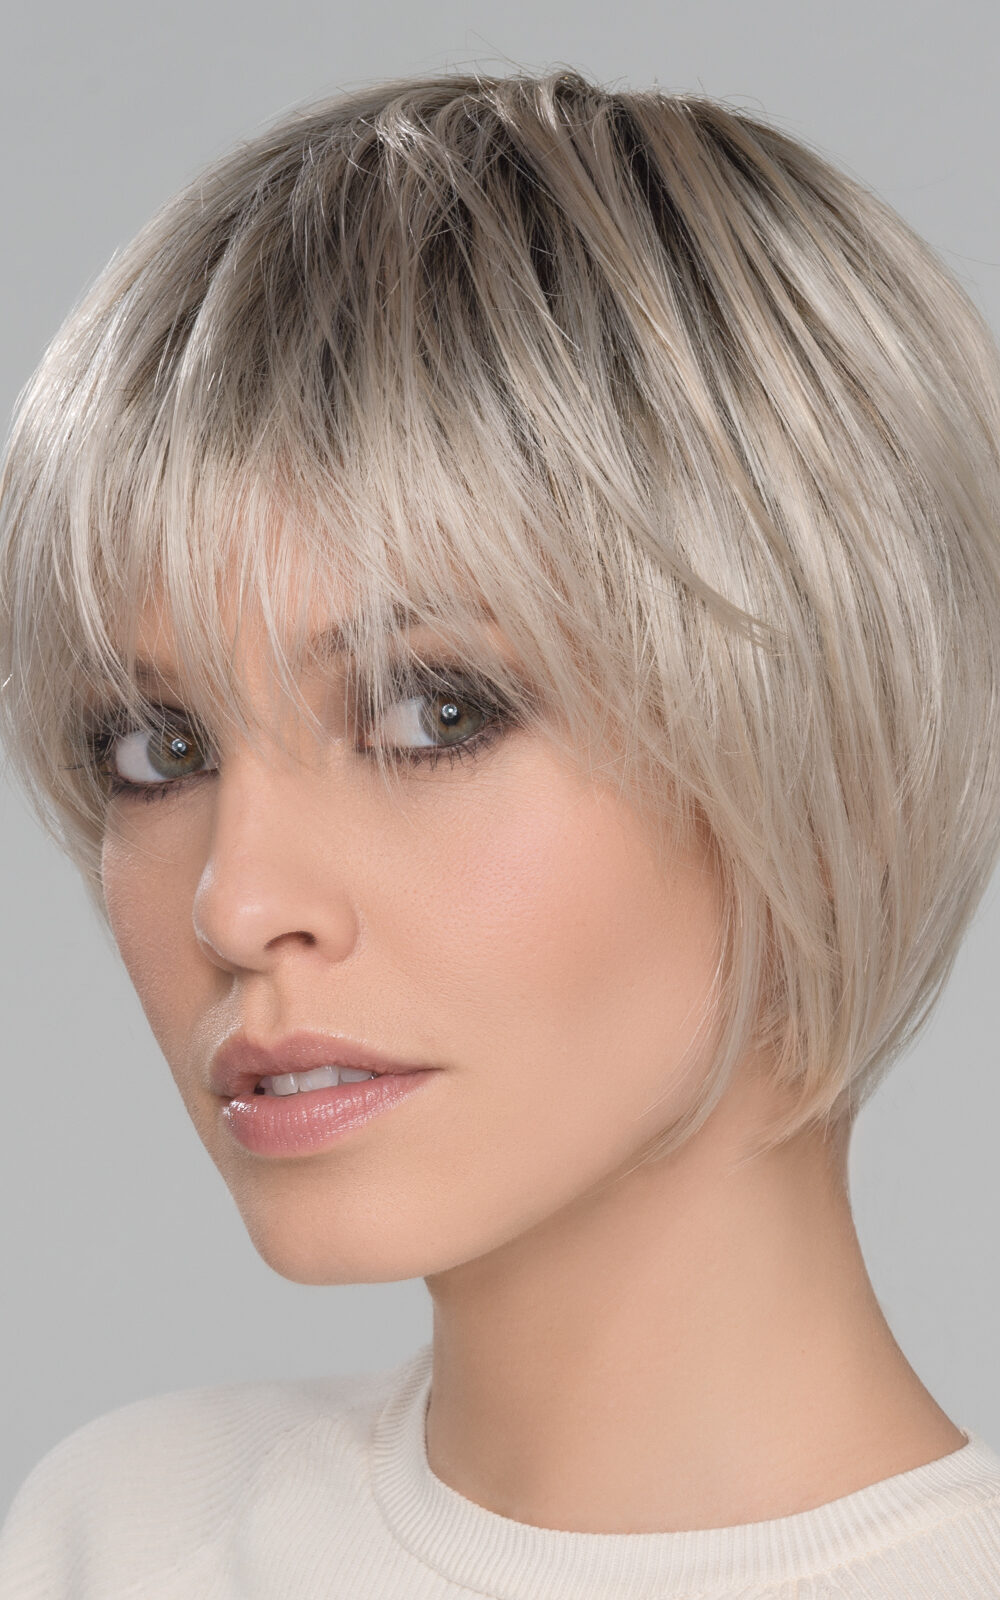 With soft layers that frame around the face. Edgy, with pieced out bangs and lots of personality